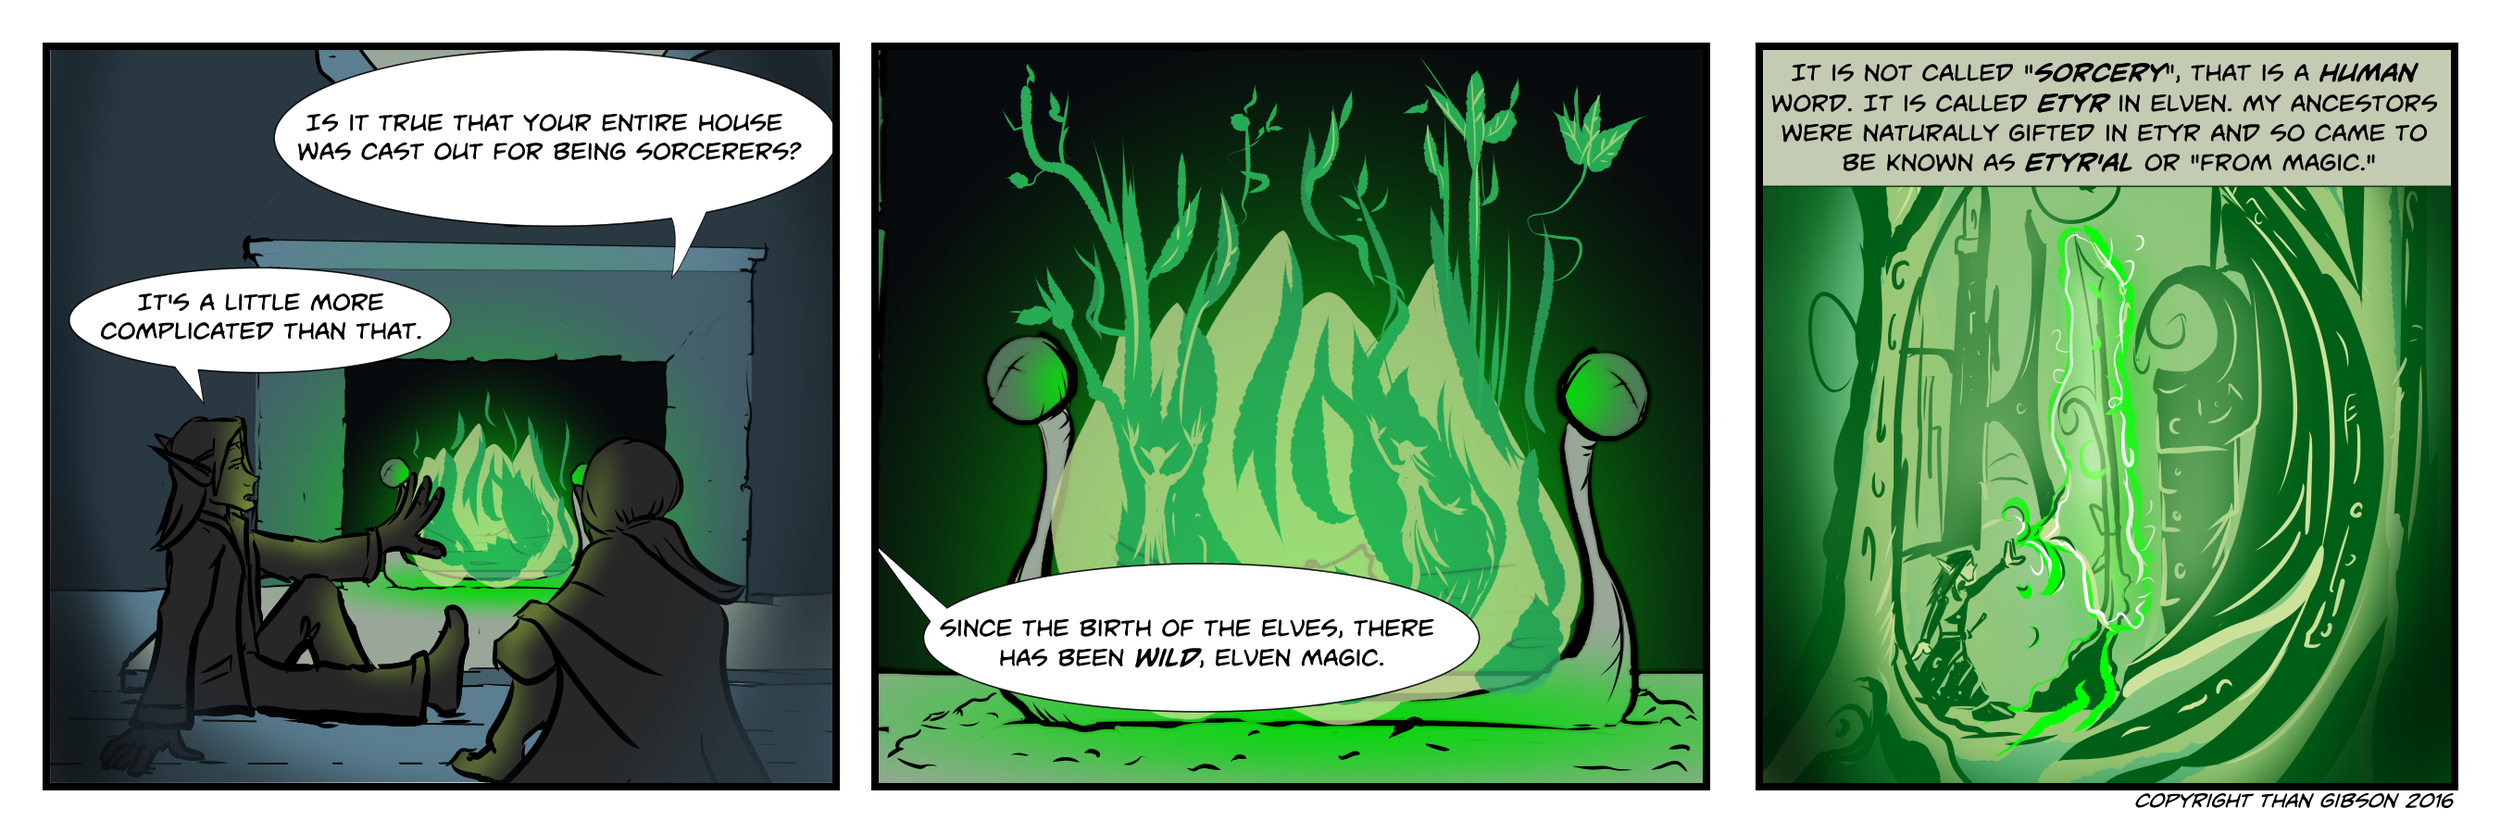 CHRONICLE: A CHRONICLE OF THIEVES - CHAPTER 3, STRIP 8